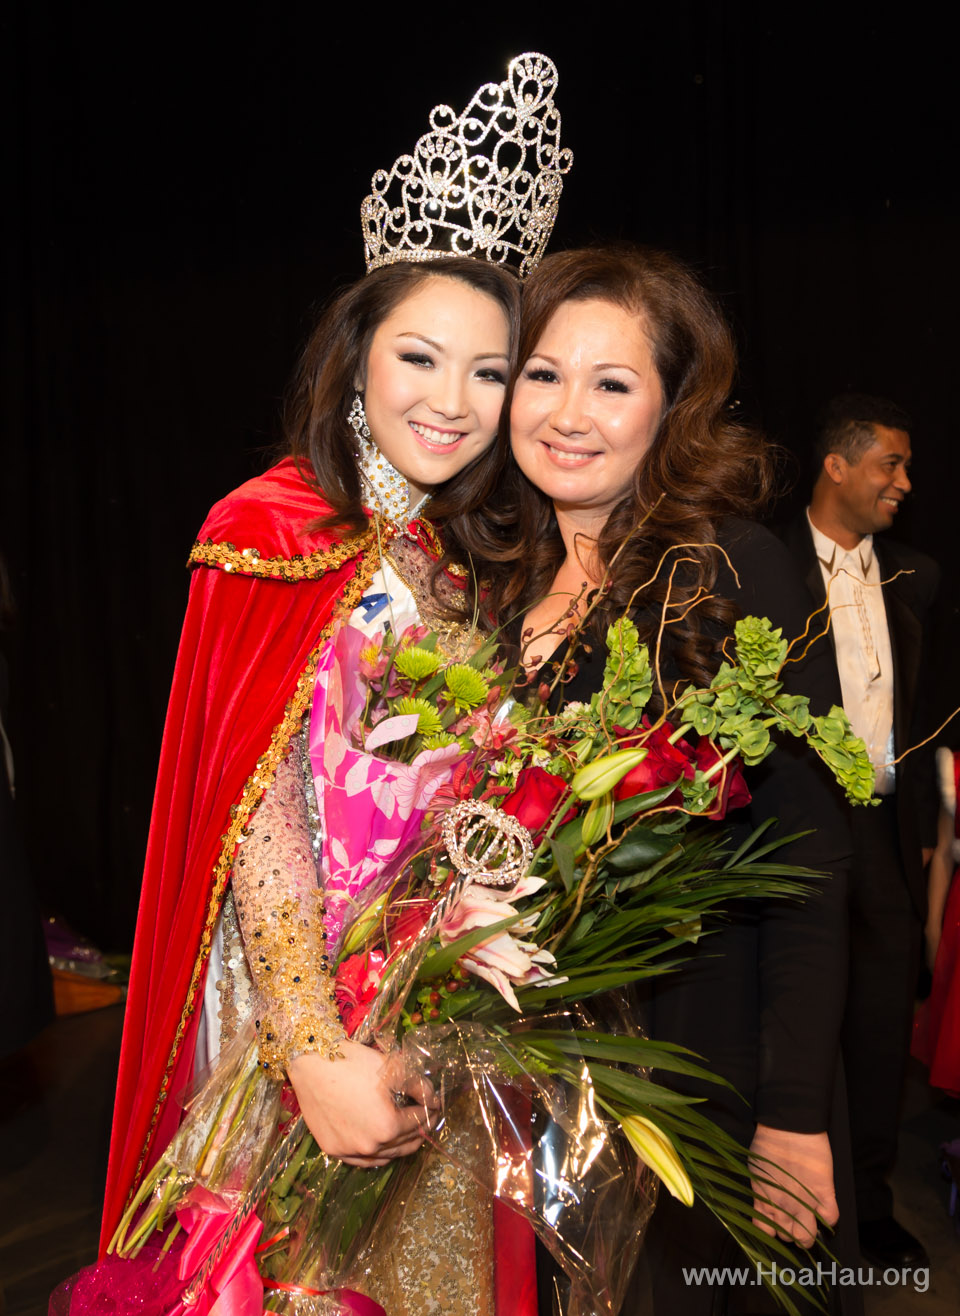 Miss Vietnam of Northern California 2014 - Hoa Hau Ao Dai Bac Cali 2014 - Behind the Scenes - Image 309